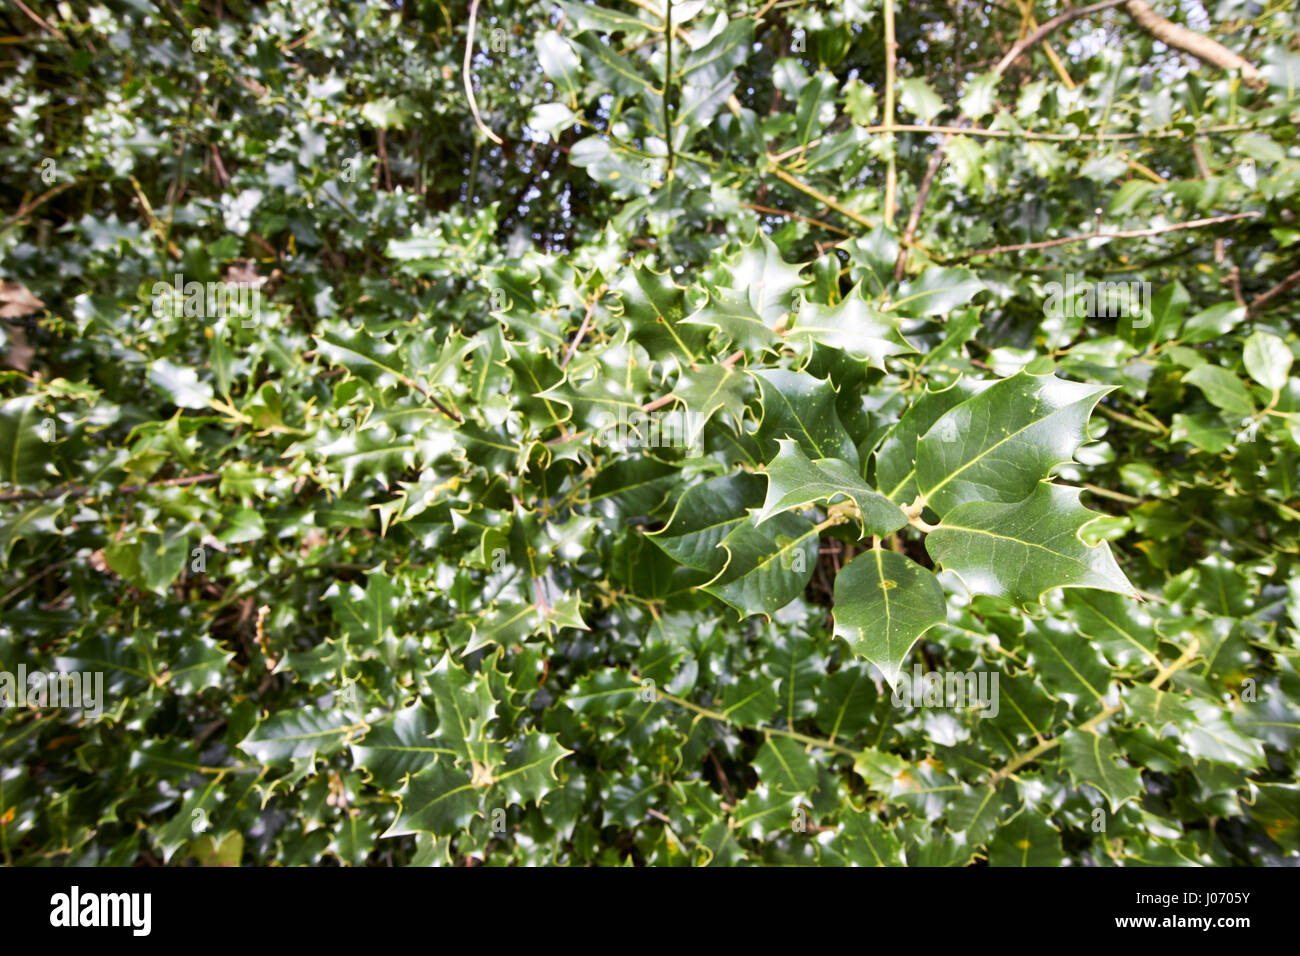 Plants With Spiky Leaves Stock Photos Plants With Spiky Leaves